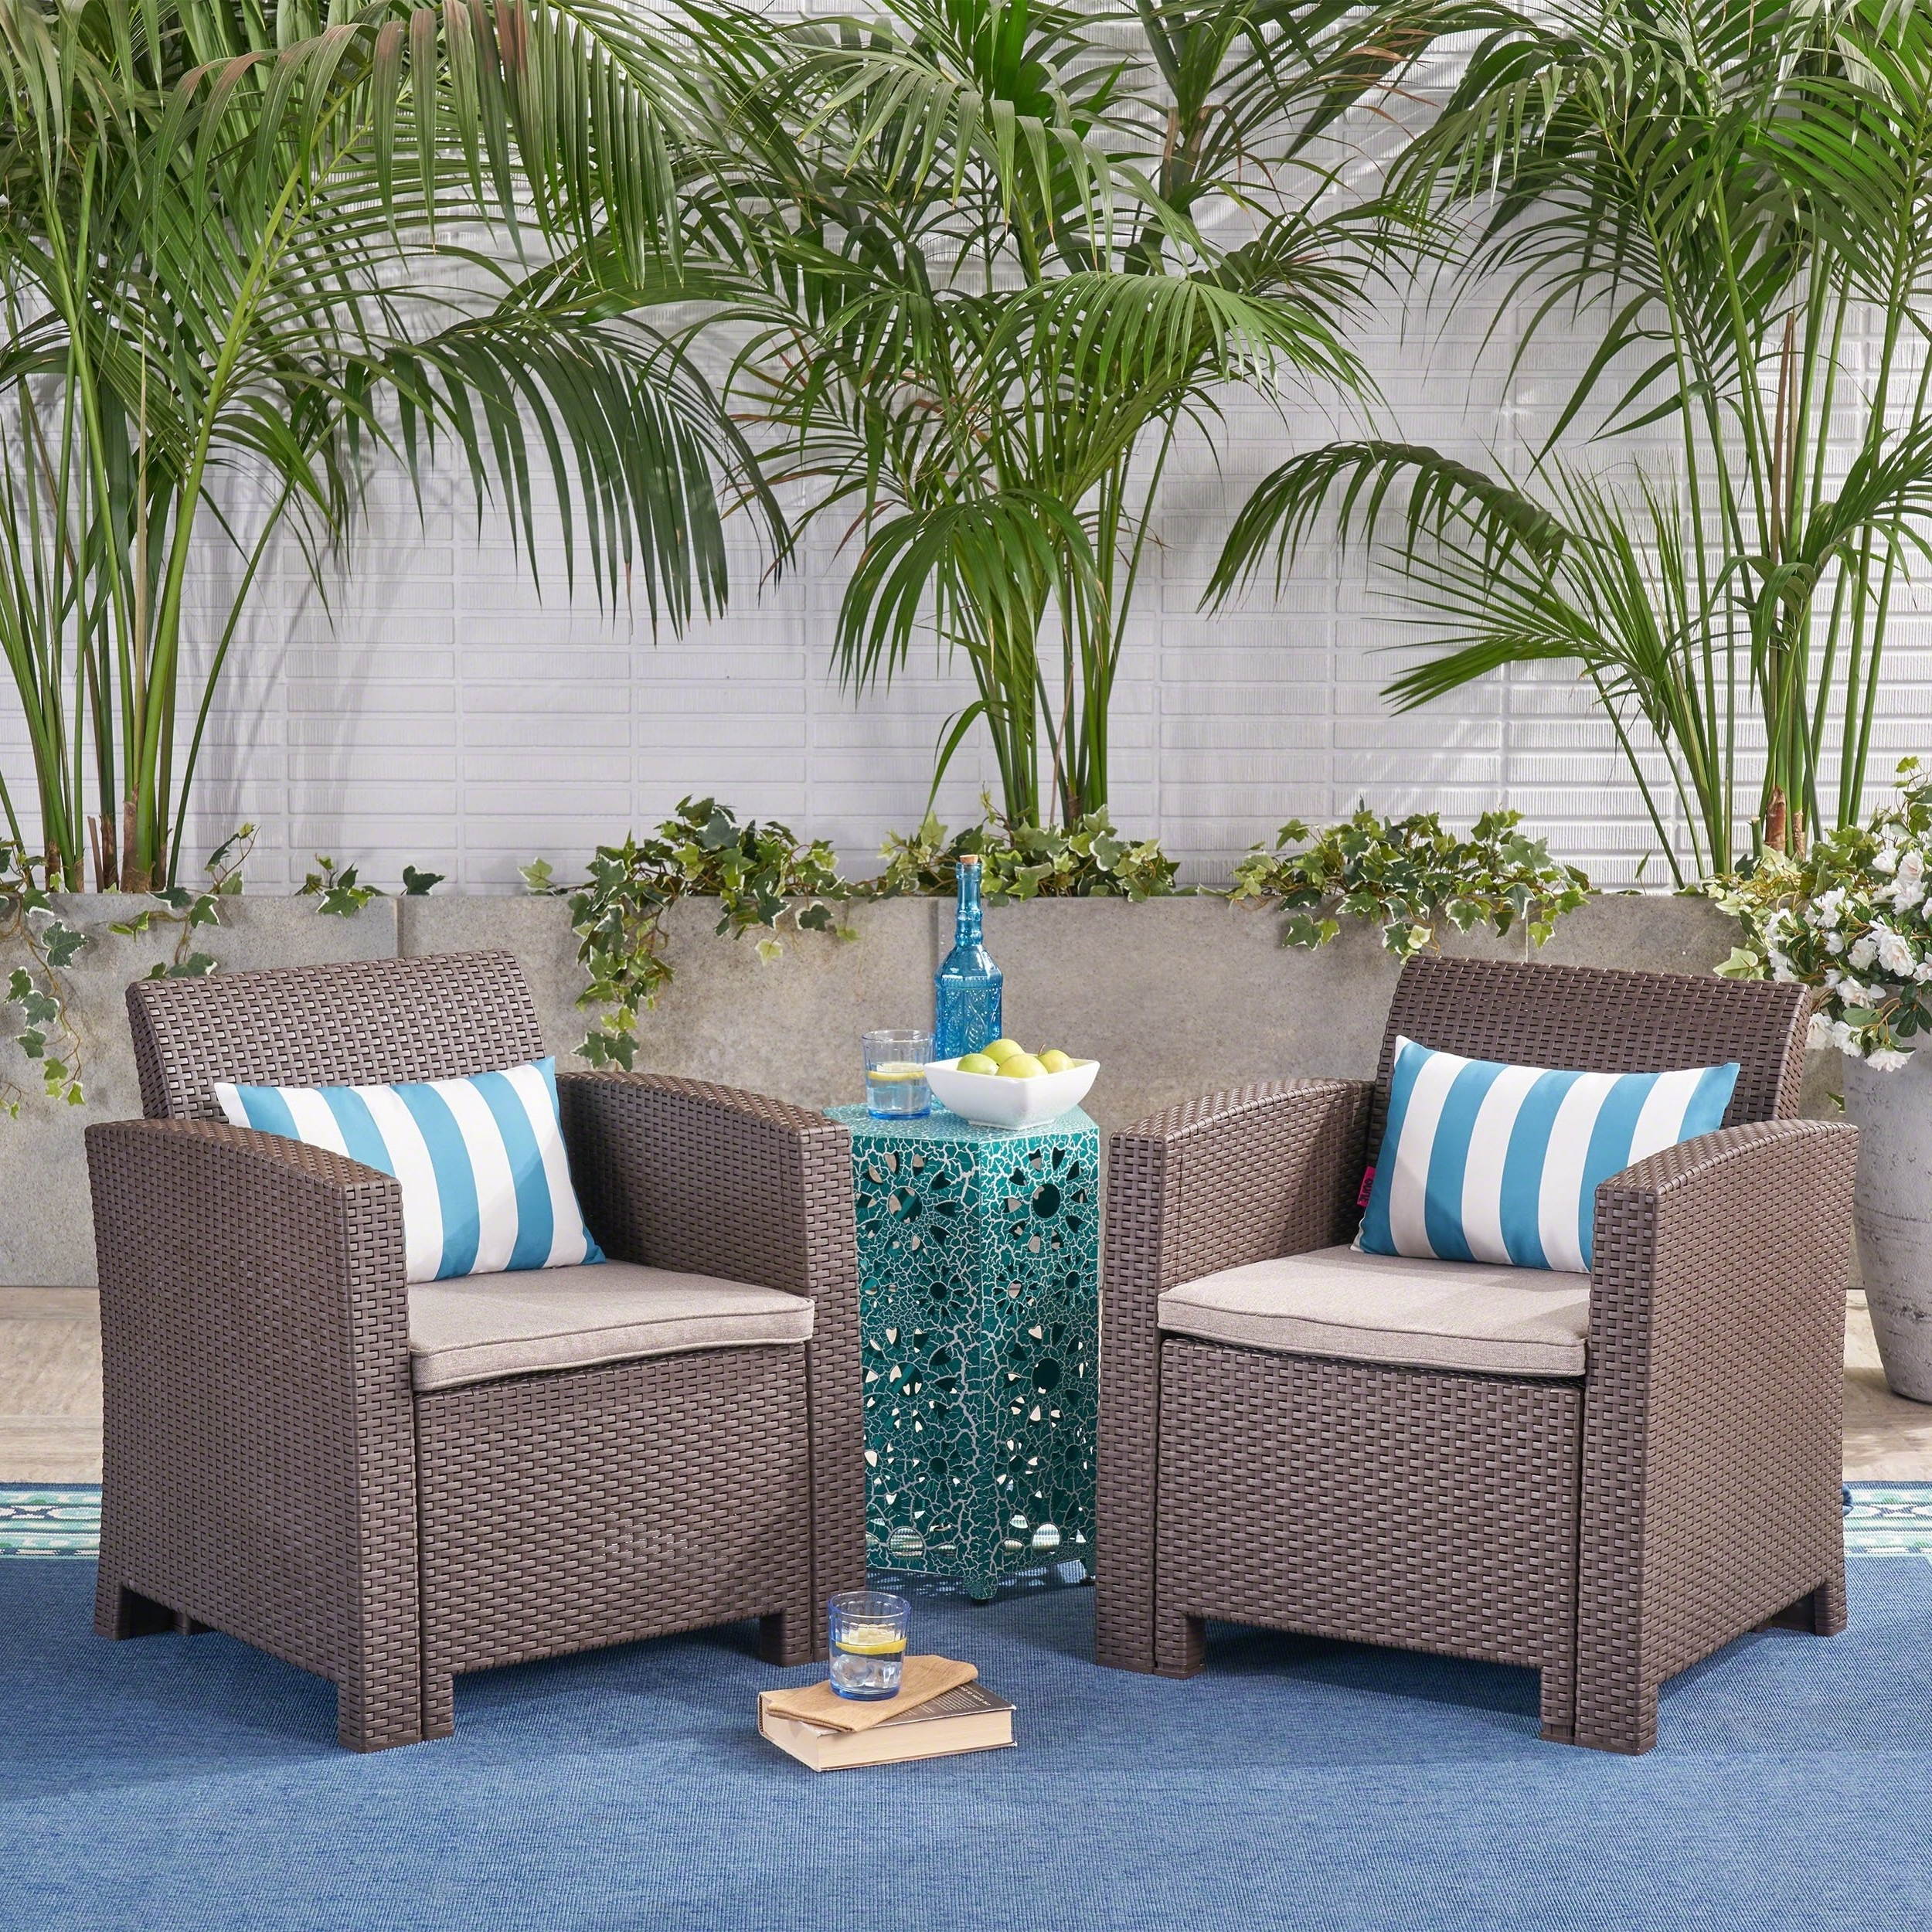 Well Liked Buy 2 Outdoor Sofas, Chairs & Sectionals Online At Overstock With Regard To Alder Grande Ii Swivel Chairs (View 19 of 20)